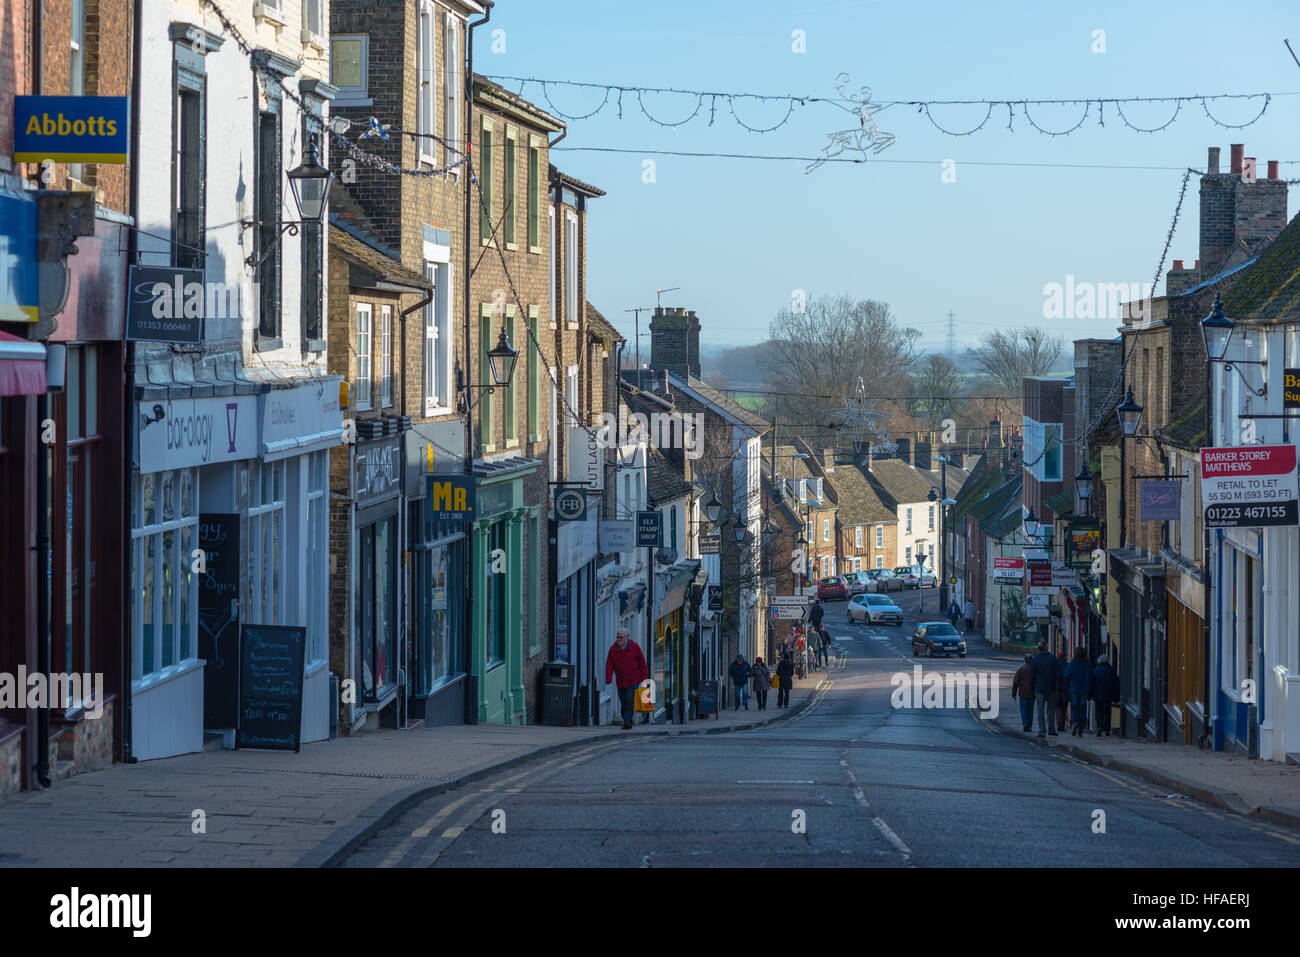 View down Fore Hill in city of Ely, Cambridgeshire, England. - Stock Image